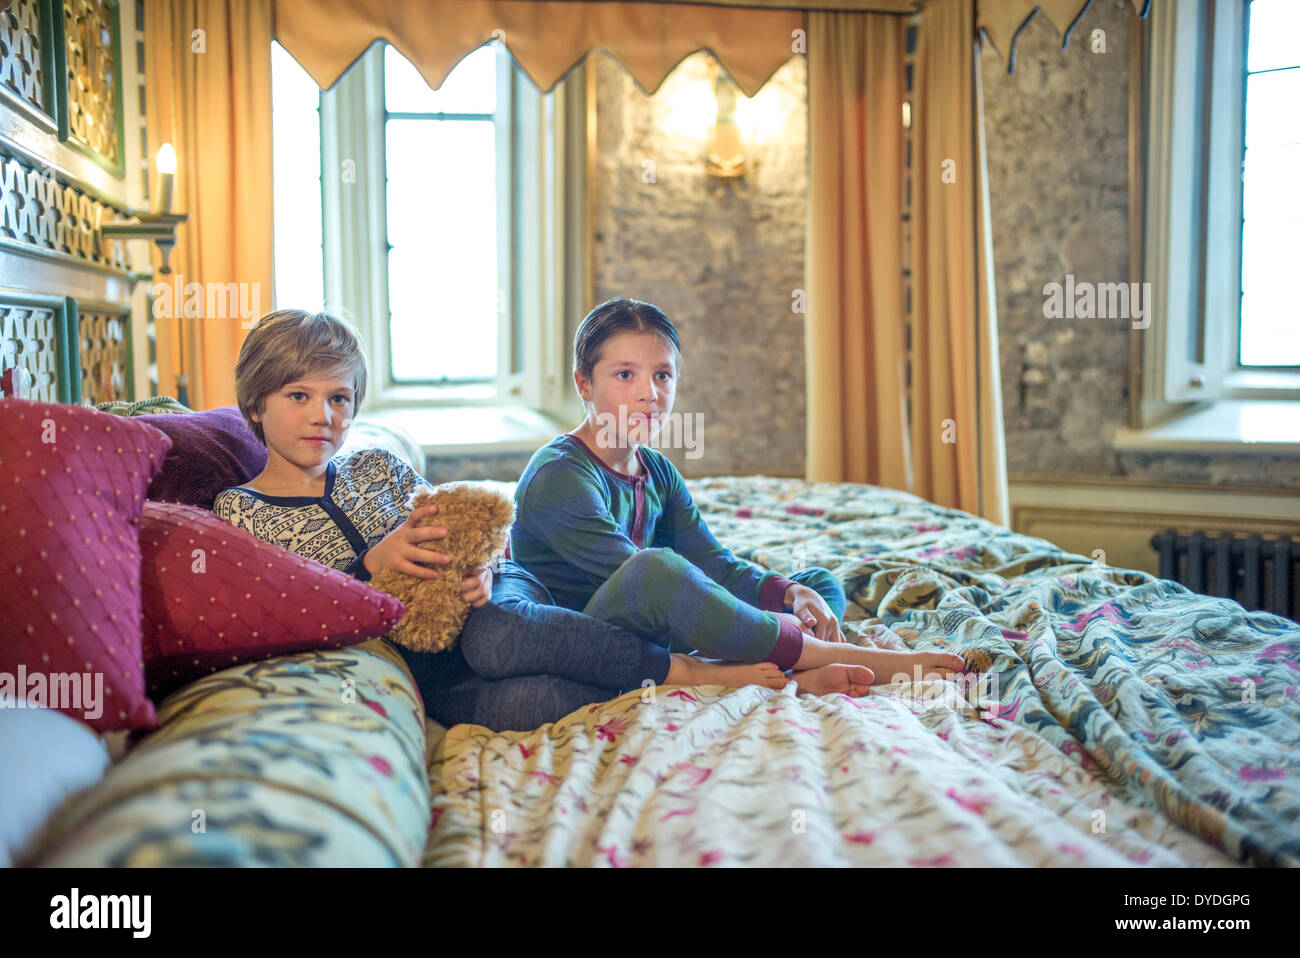 Two boys in onesies on the biggest hotel bed in Europe at Thornbury Castle. - Stock Image